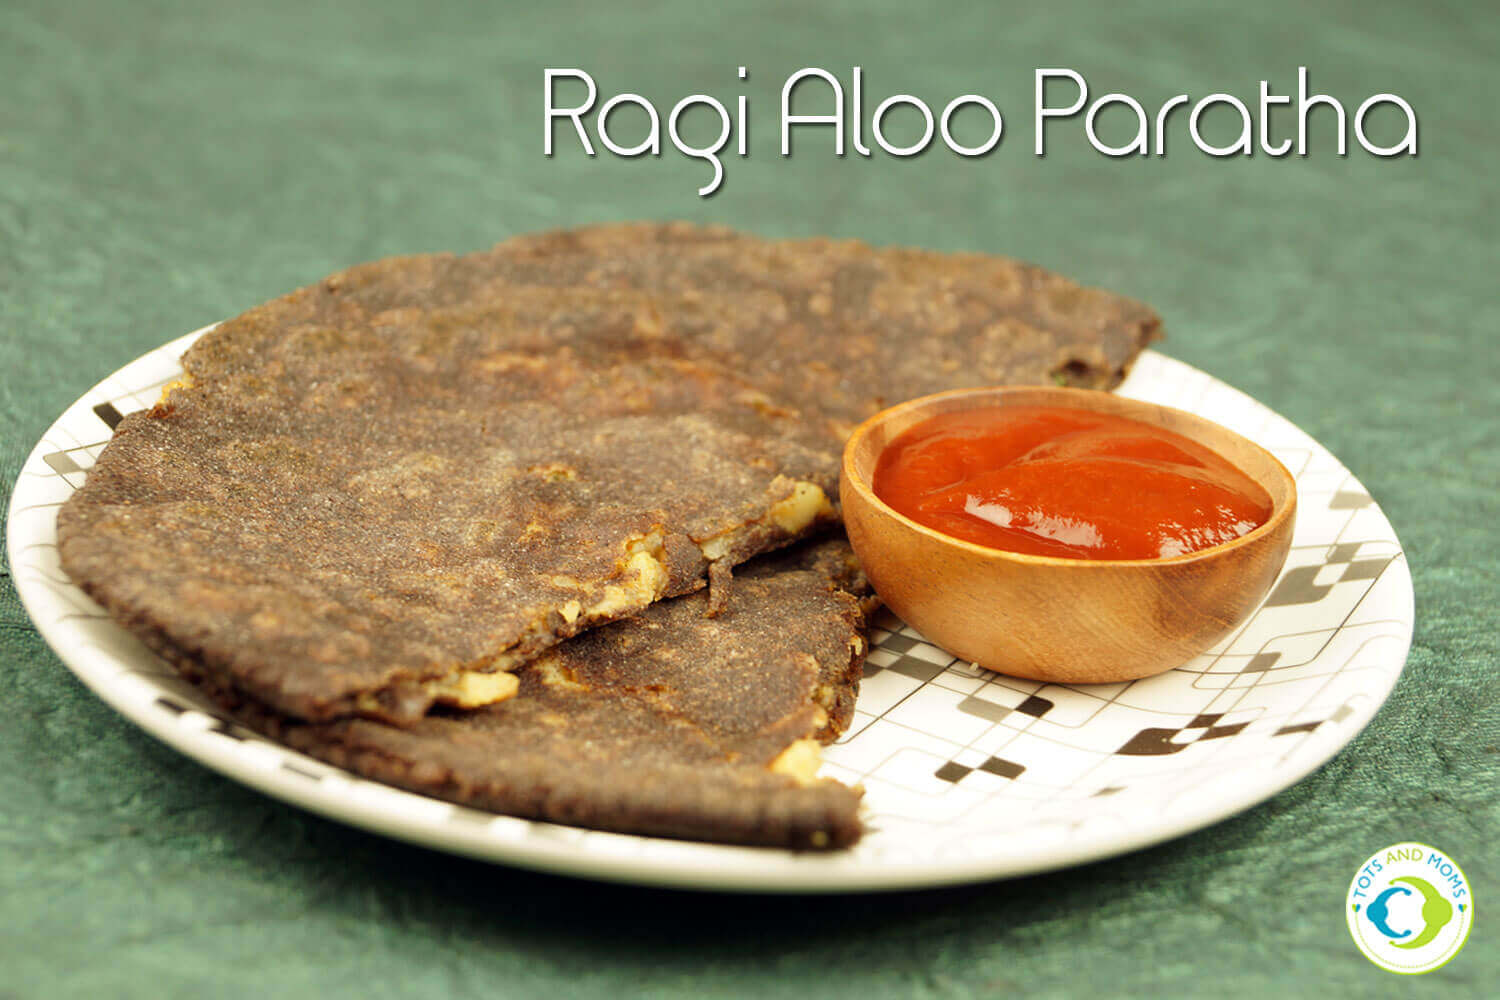 RAGI ALOO PARATHA for Toddlers, Kids & Family Paratha with Finger millet